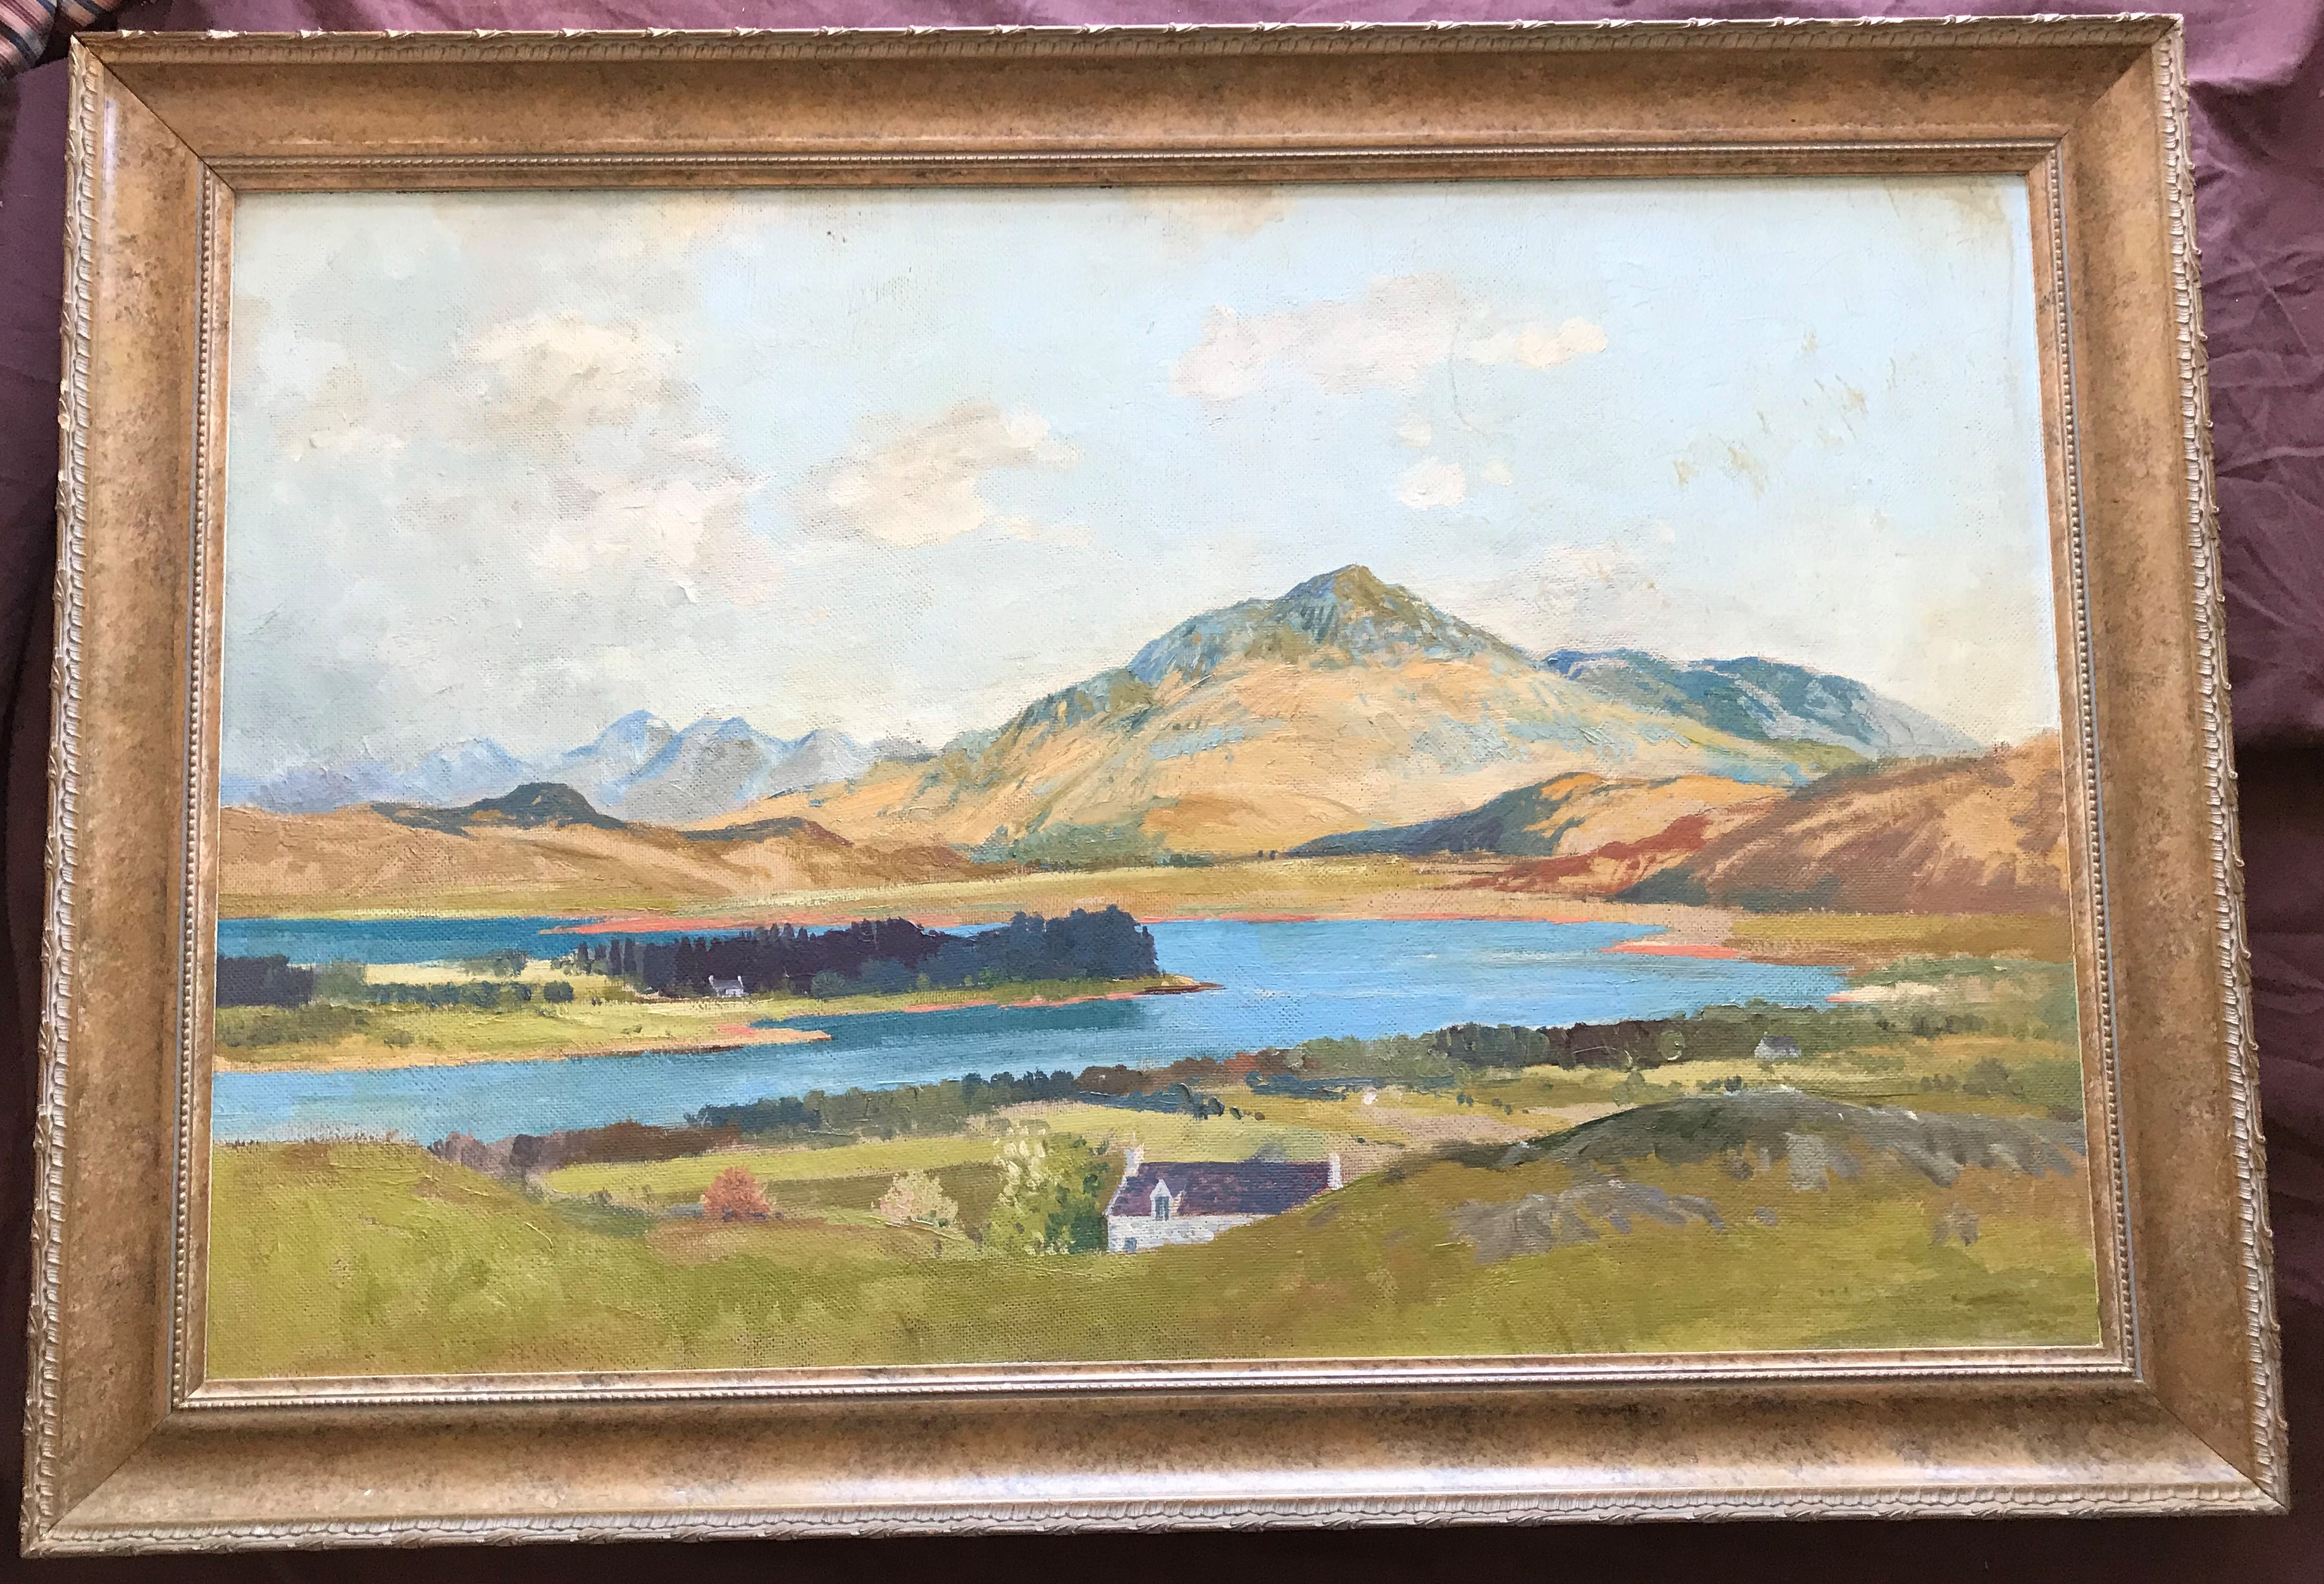 Scottish oil painting Beinn Respoil and Loch Shiel by Tom Hovell Shanks RSW, RGI, PIA - Image 2 of 4